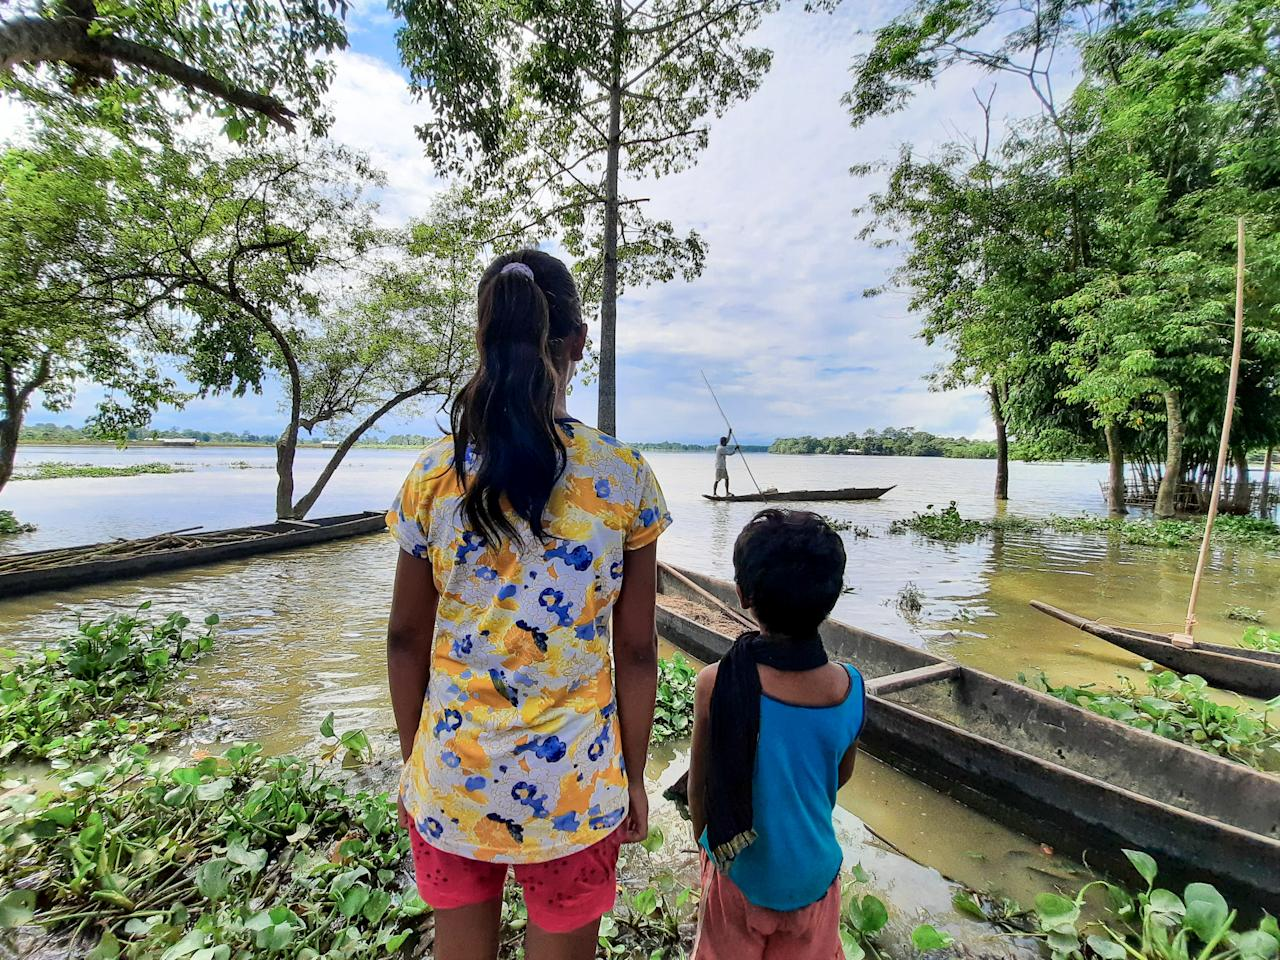 Two girls of Laibil village in Sibsagar district watches increase level of the water due to heavy rain in Sibsagar district of Assam, India, on July 22, 2020. .Many villages have been affected due to flood more than 500 families have been affected till July according to the report. (Photo by Dimpy Gogoi/NurPhoto via Getty Images)